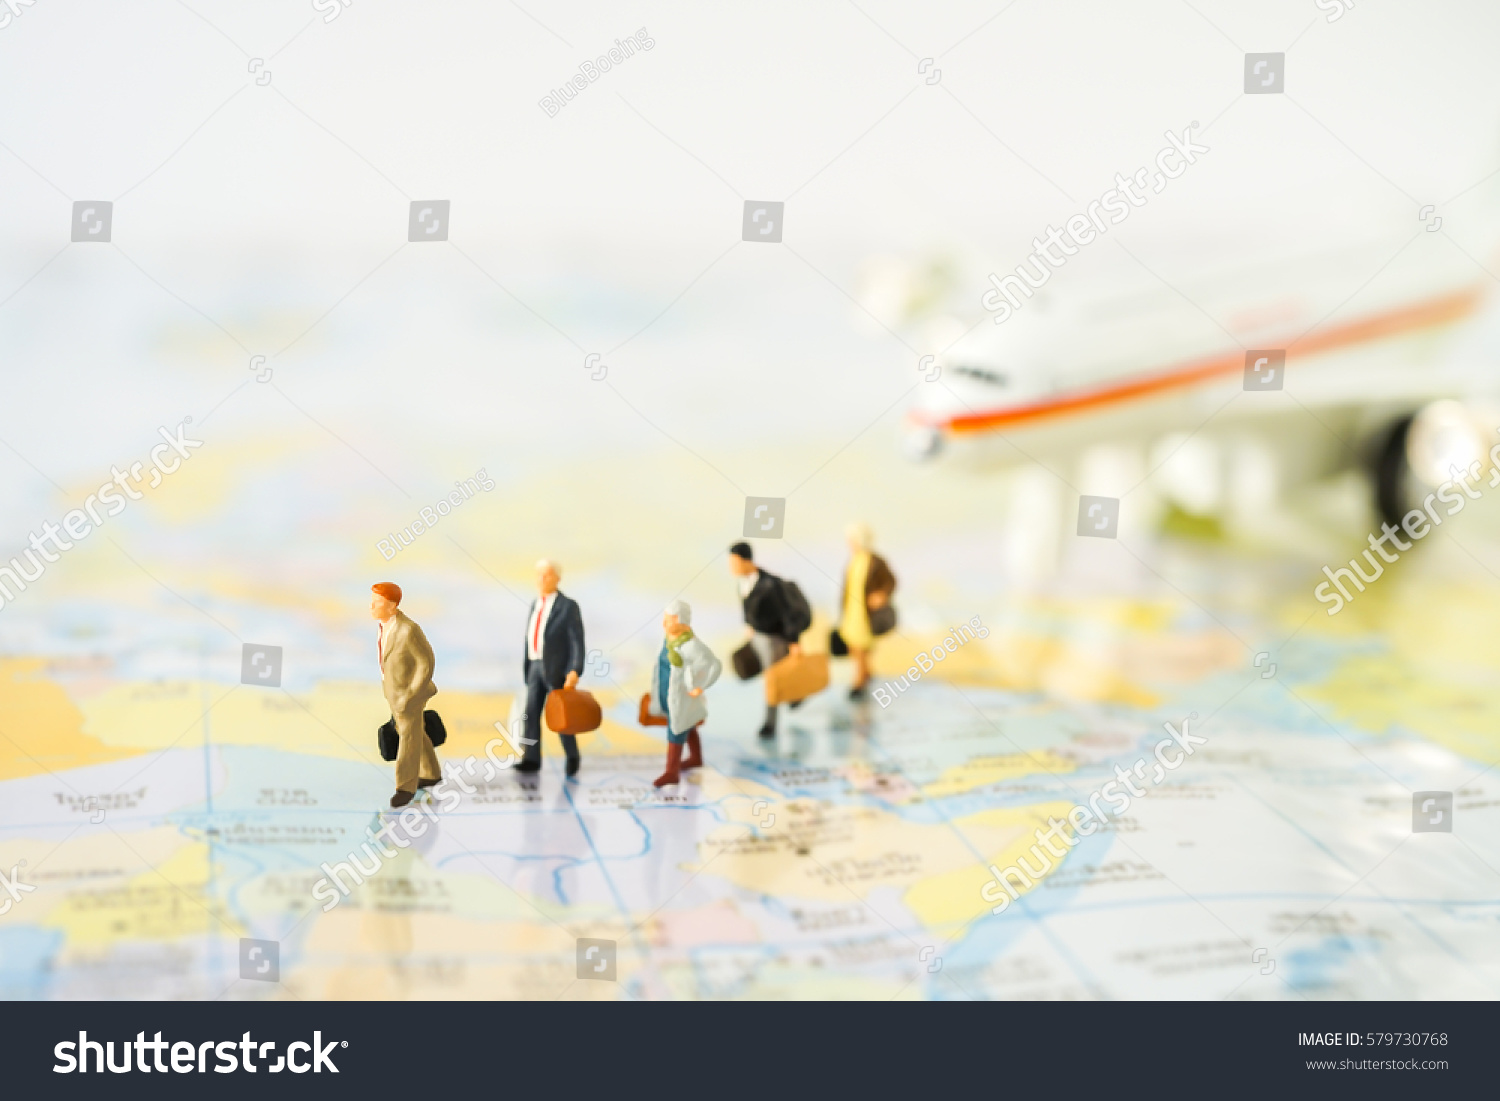 Miniature business people businesses team walking stock for Waldo s world wide travel service